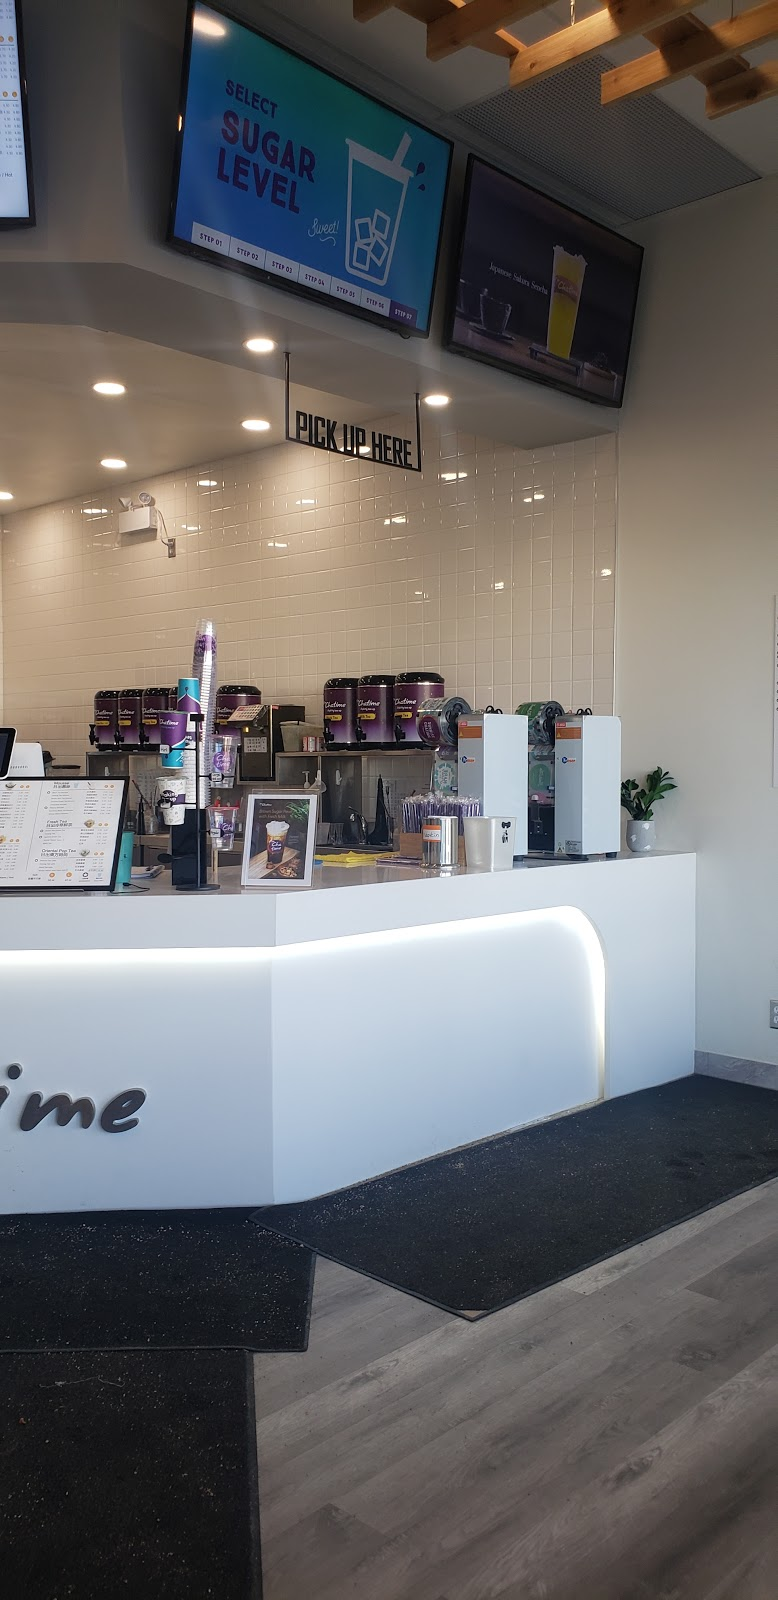 Chatime (Mcphillips) | cafe | 5-1375 McPhillips St, Winnipeg, MB R2V 3V1, Canada | 2042196669 OR +1 204-219-6669